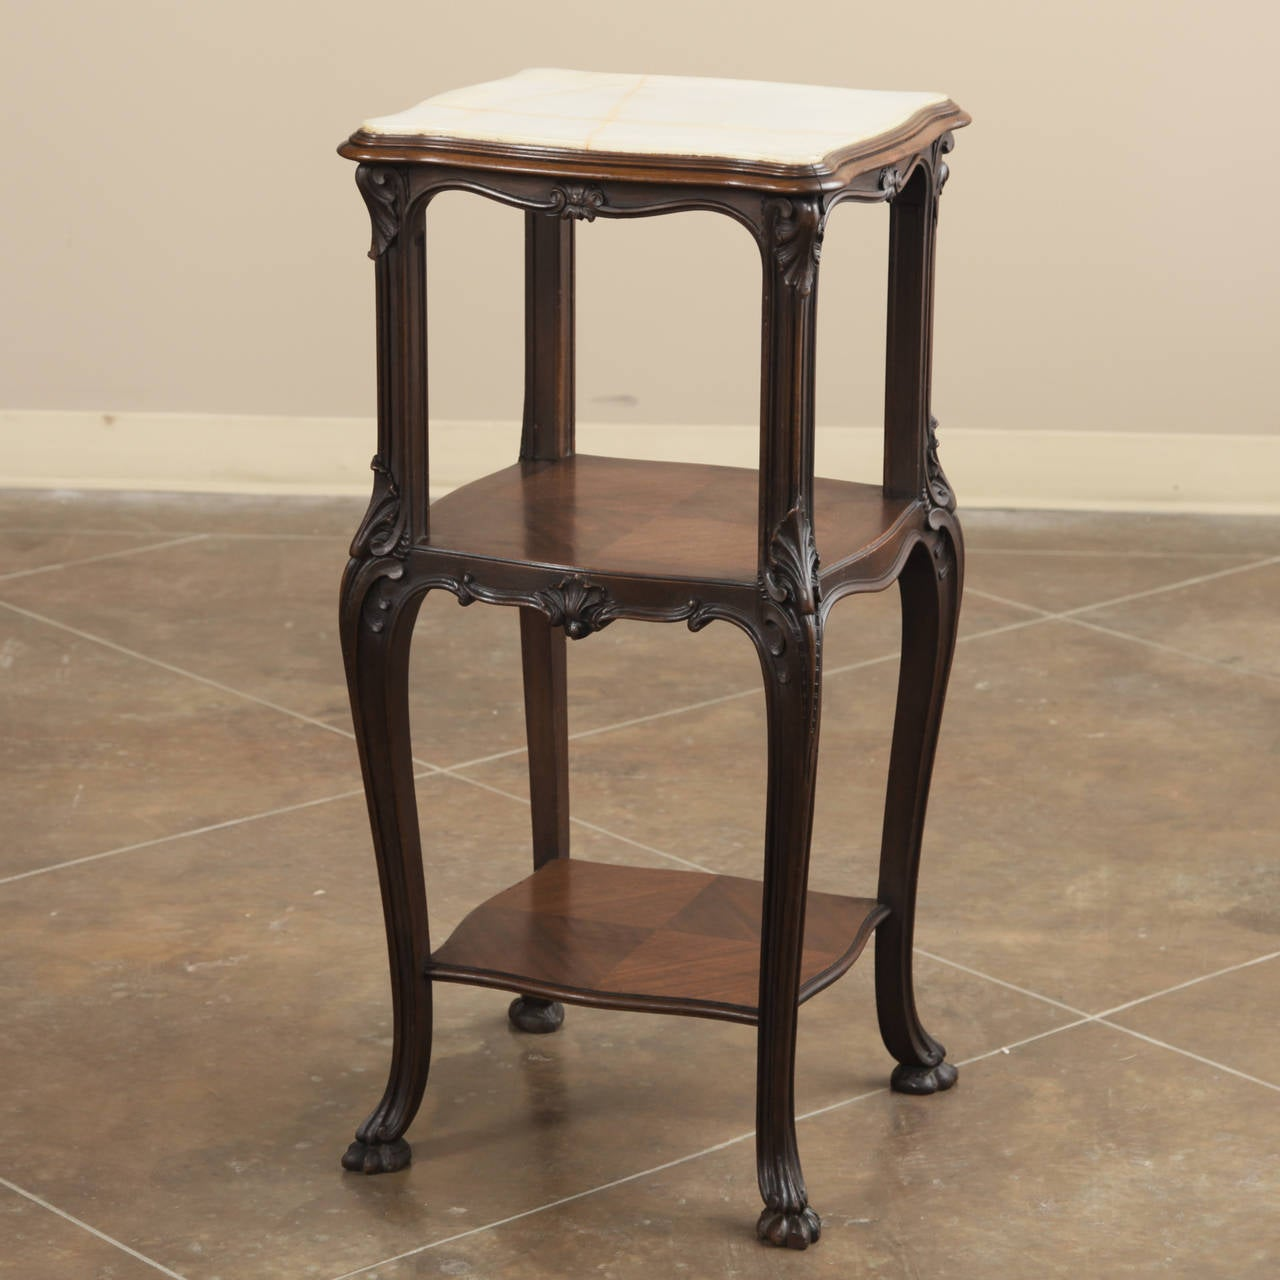 19th Century French Antique Solid Rosewood Onyx Top Nightstand or Lamp Table In Excellent Condition For Sale In Dallas, TX